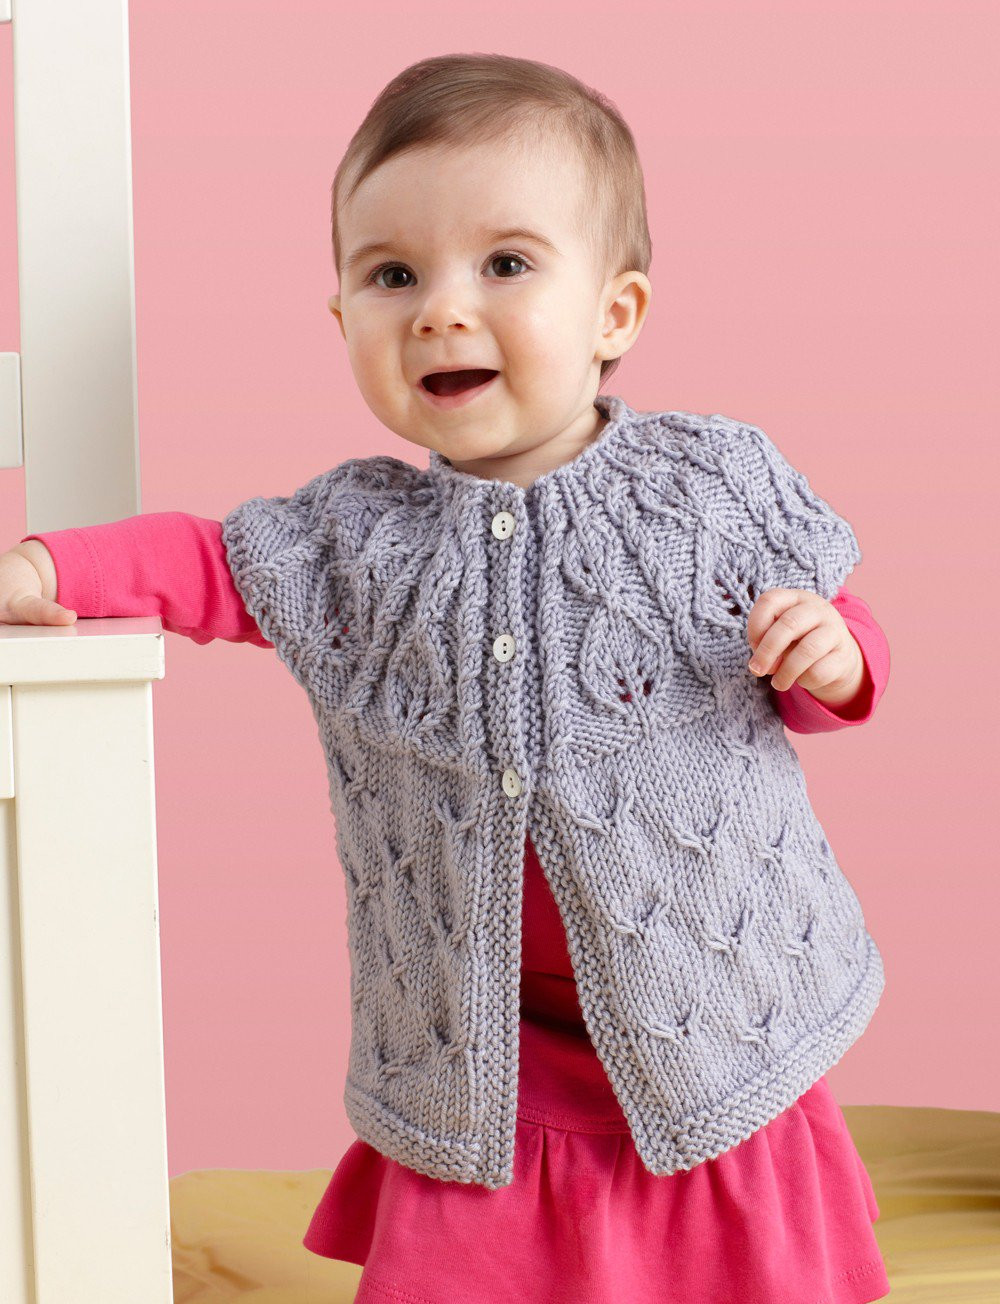 Free Baby Sweater Patterns Awesome 10 Free Baby Sweater Knitting Patterns Of New 42 Pics Free Baby Sweater Patterns